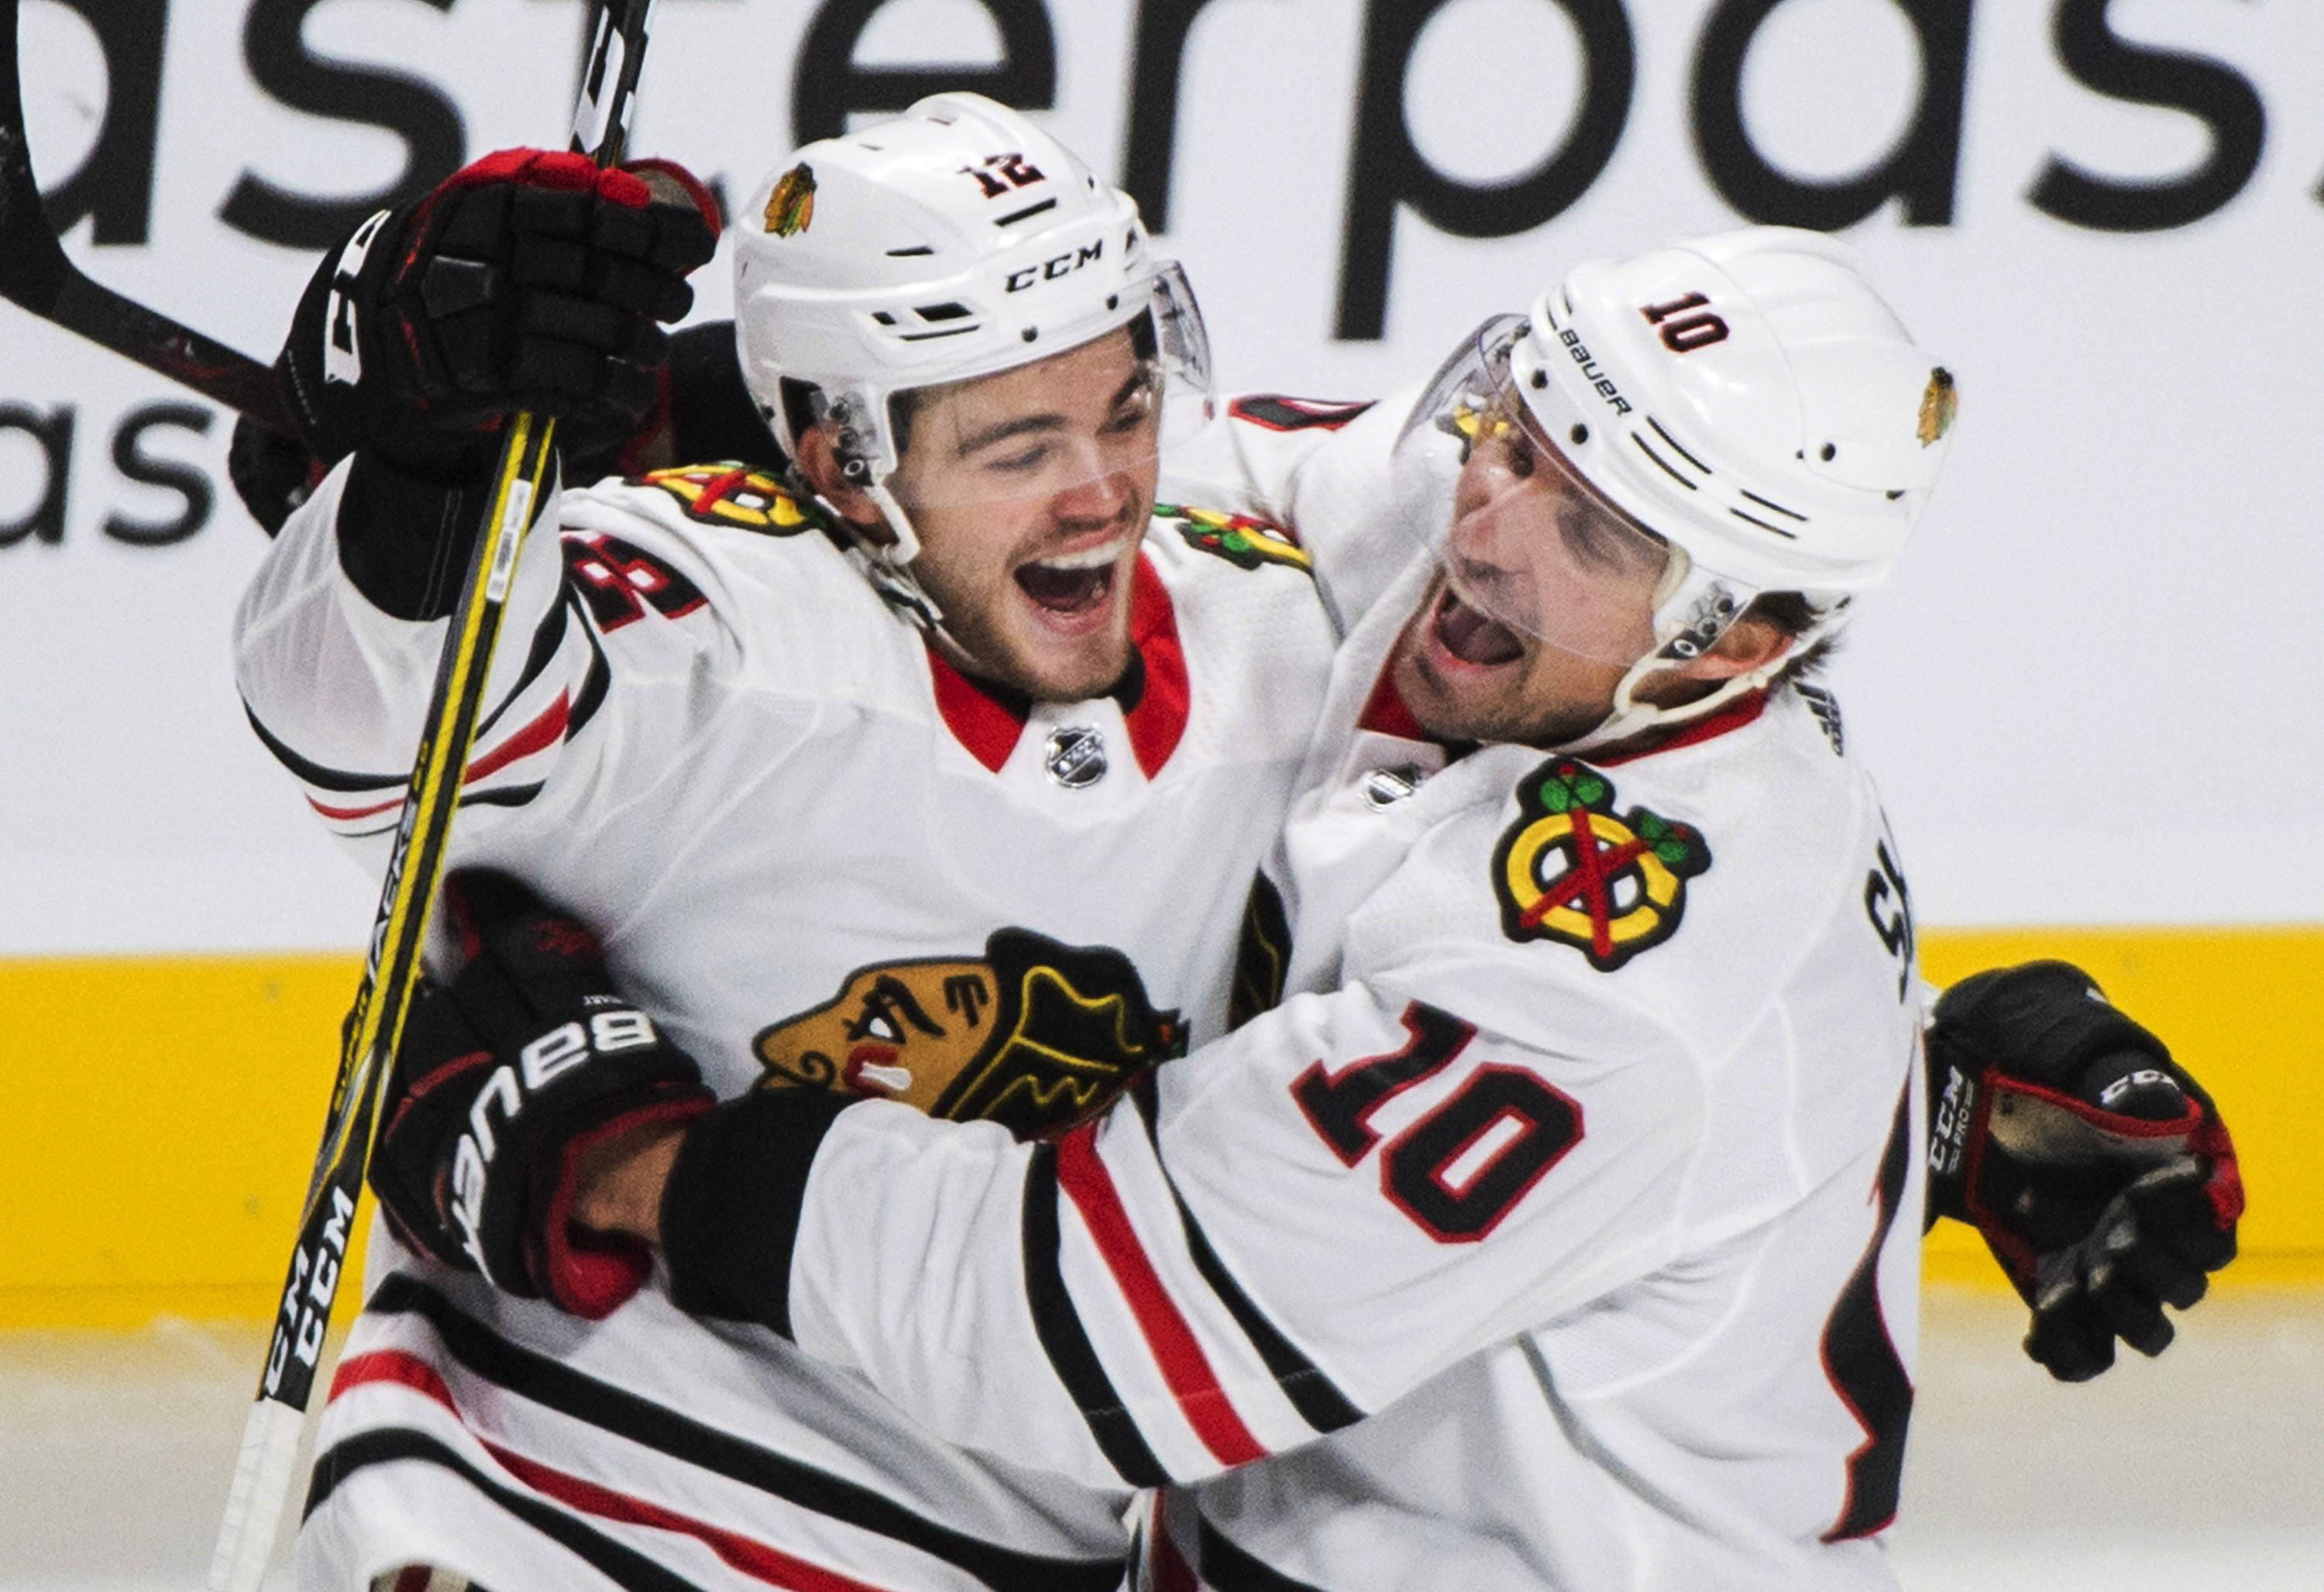 Chicago Blackhawks rookie Alex DeBrincat (12) celebrates with teammate Patrick Sharp after scoring against the Montreal Canadiens during the first period of an NHL hockey game in Montreal, Tuesday, Oct. 10, 2017.